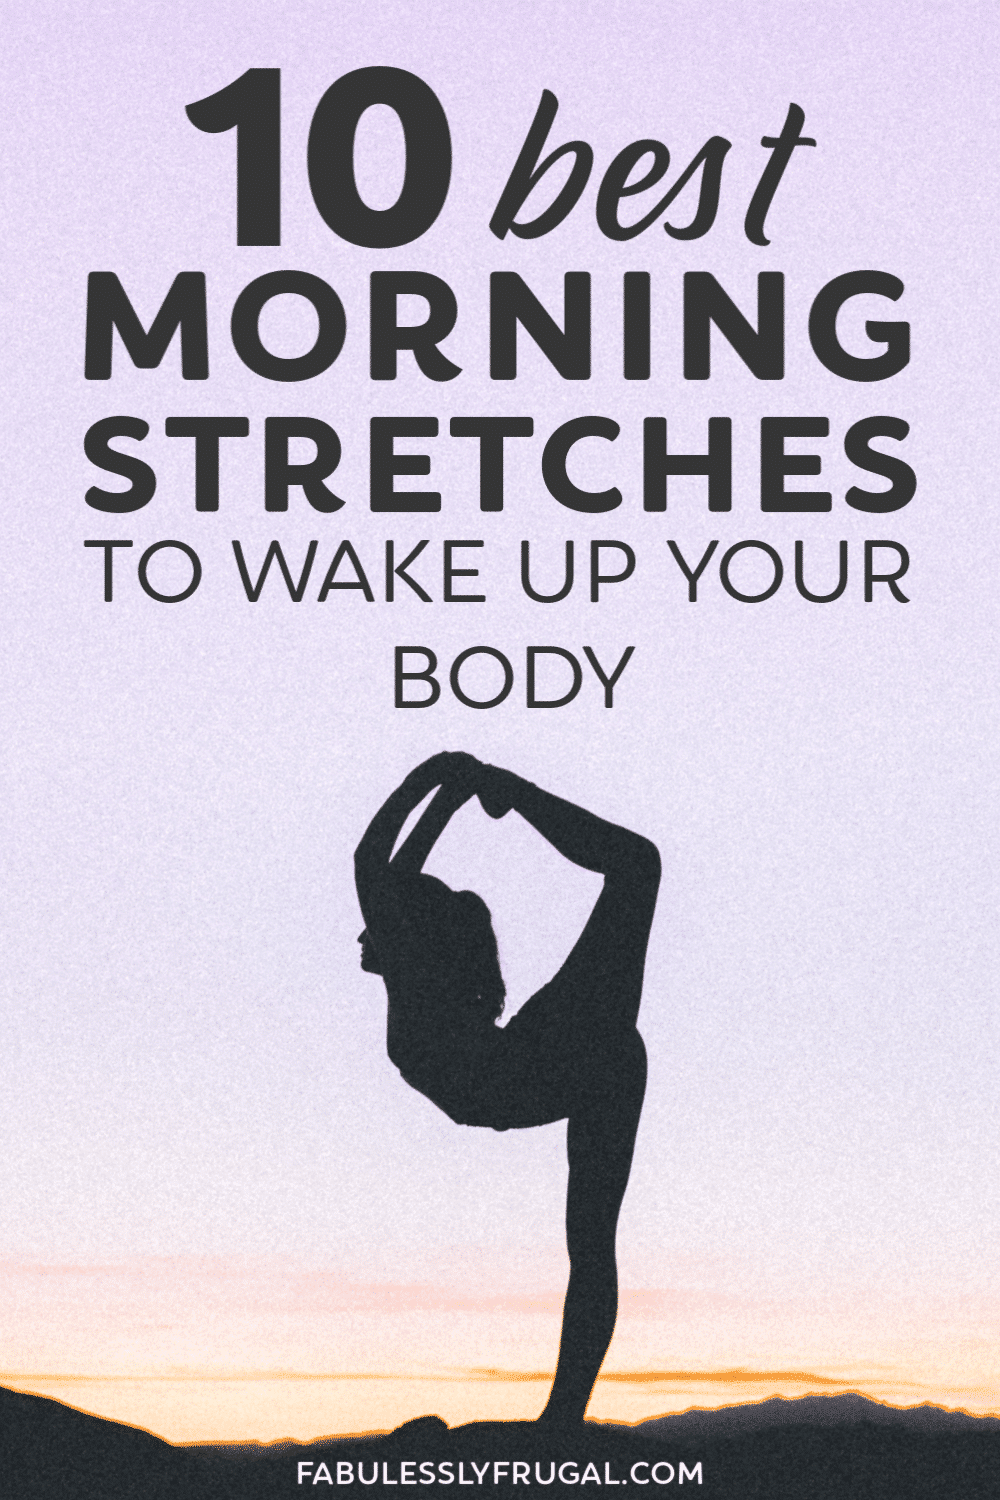 Morning stretches to wake up your body